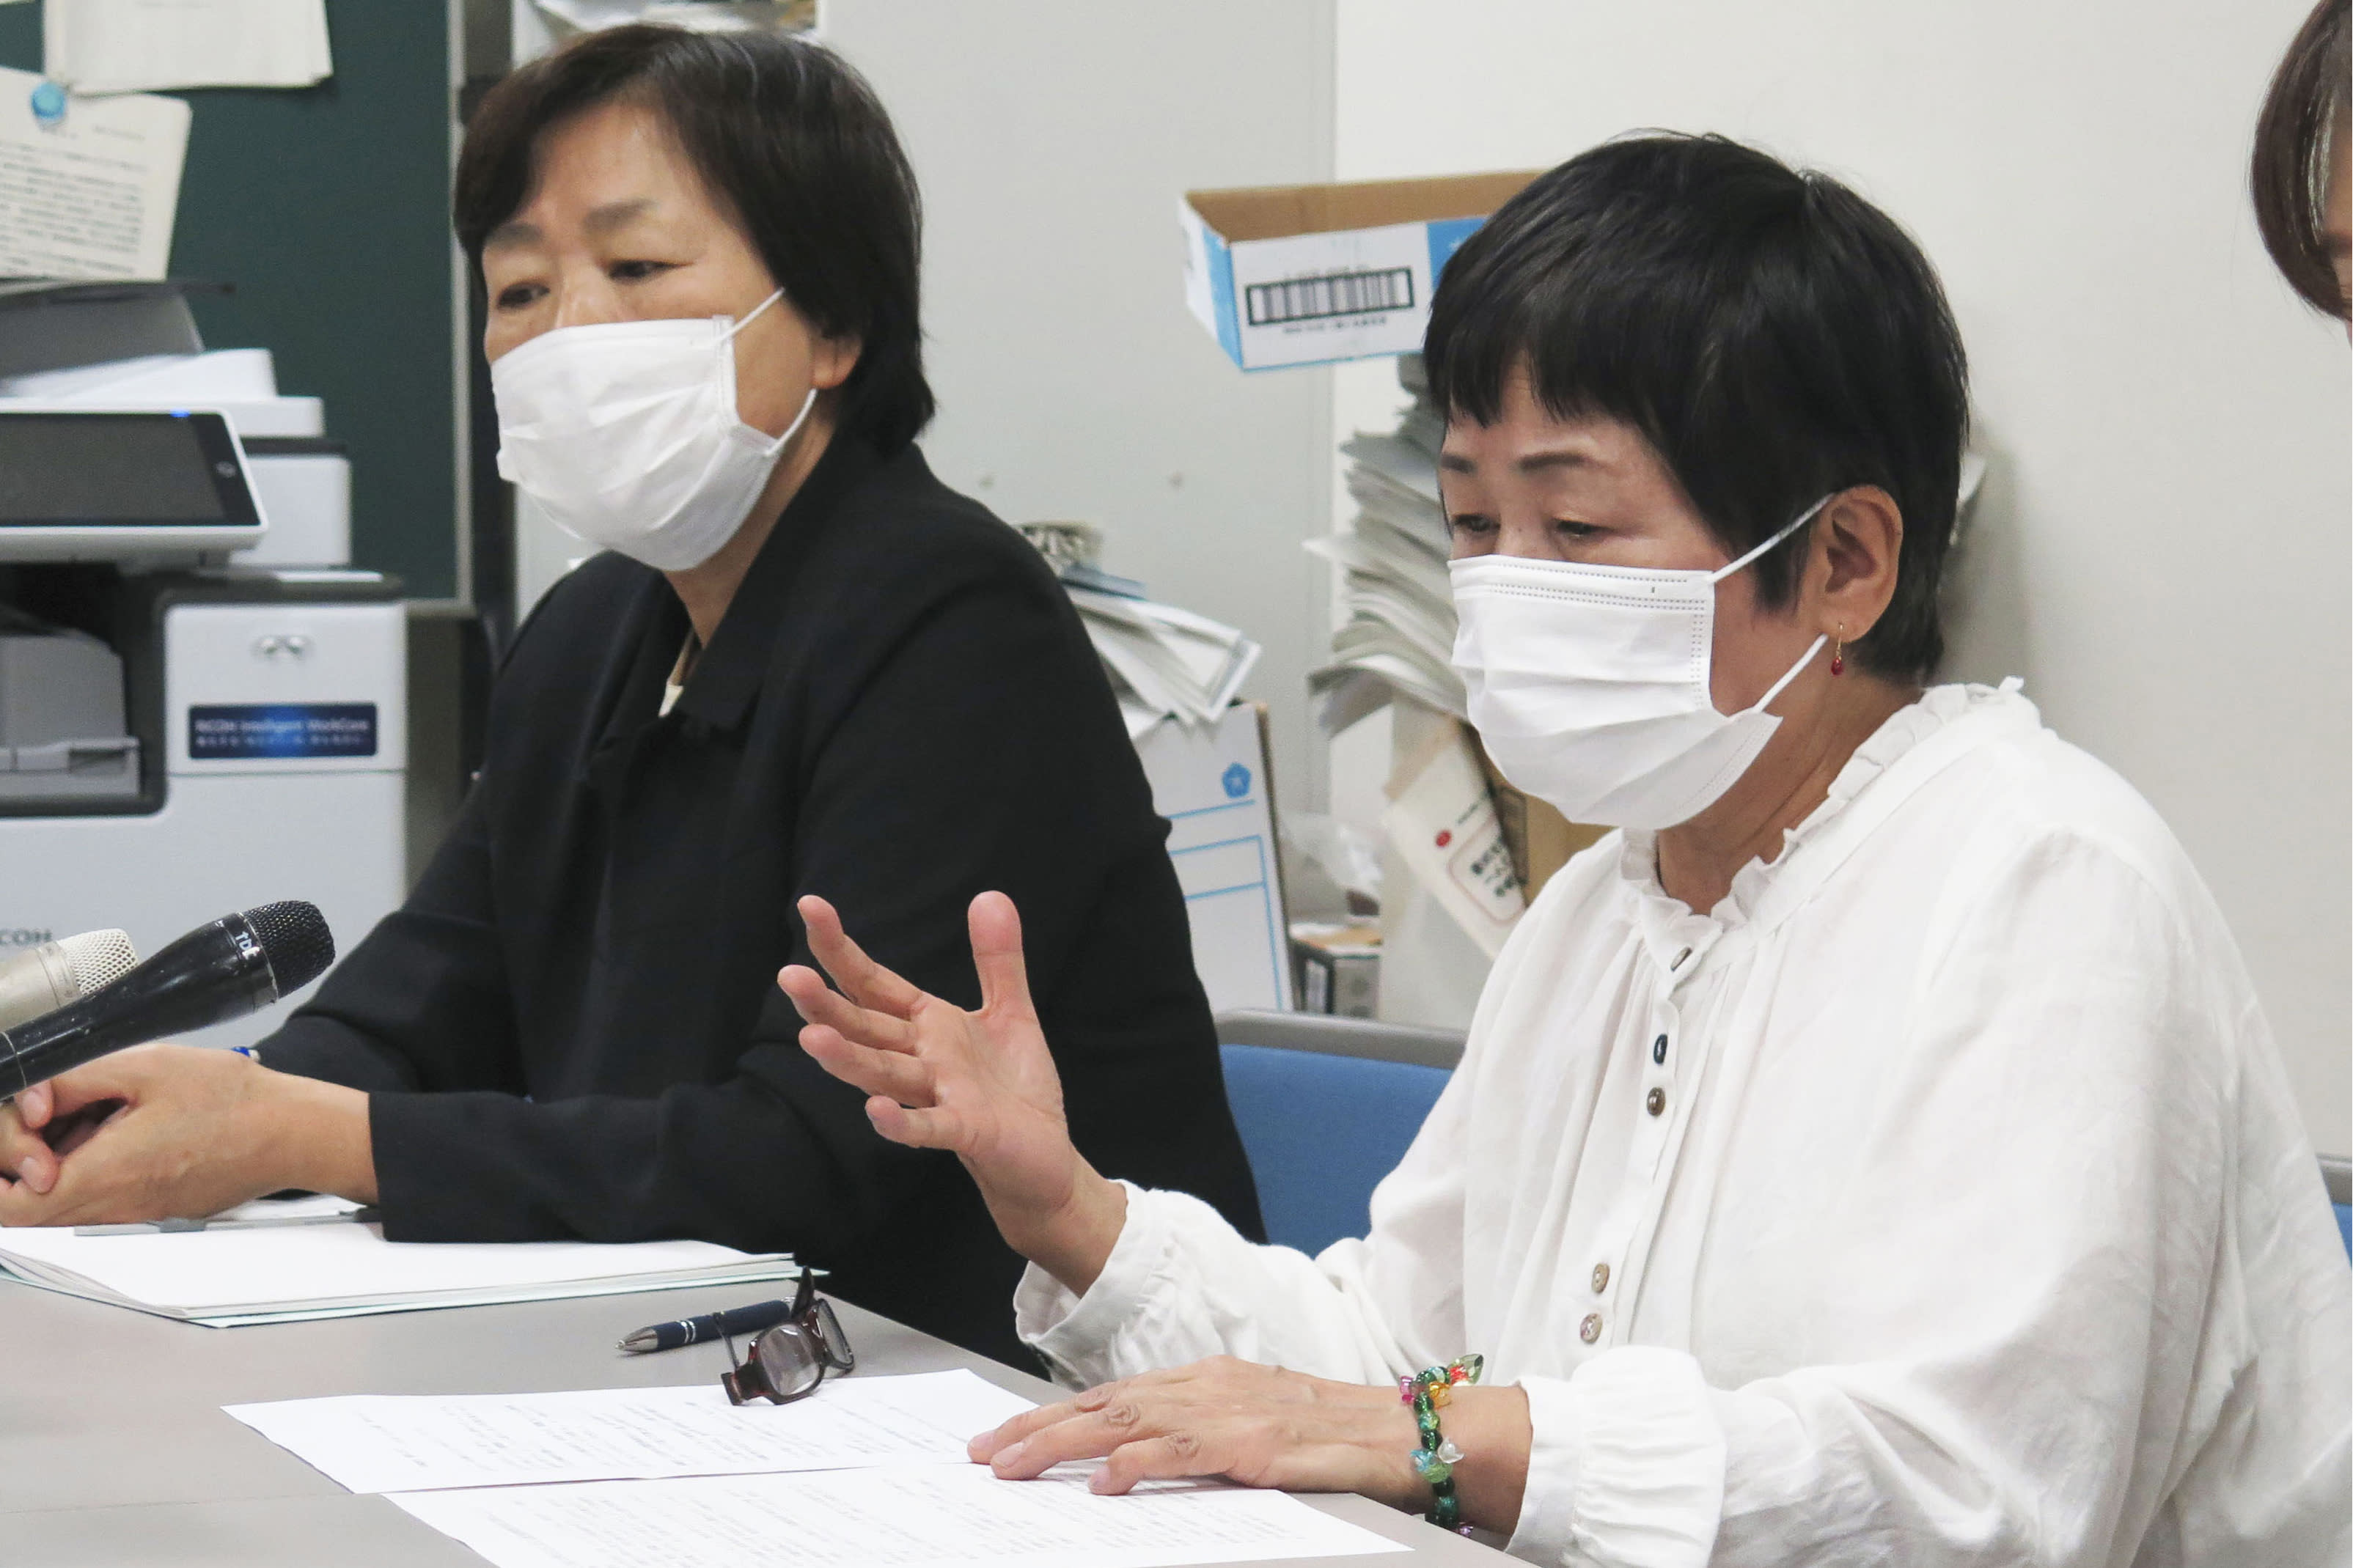 Harumi Suzuki, right, speaks during a press conference in Sendai, northern Japan, Thursday, Sept. 24, 2020. Suzuki has filed a suit against the Roman Catholic Church in Japan alleging that a priest raped her four decades ago, as the church's unfolding worldwide sexual abuse crisis gradually reaches Japan. (Kyodo News via AP)